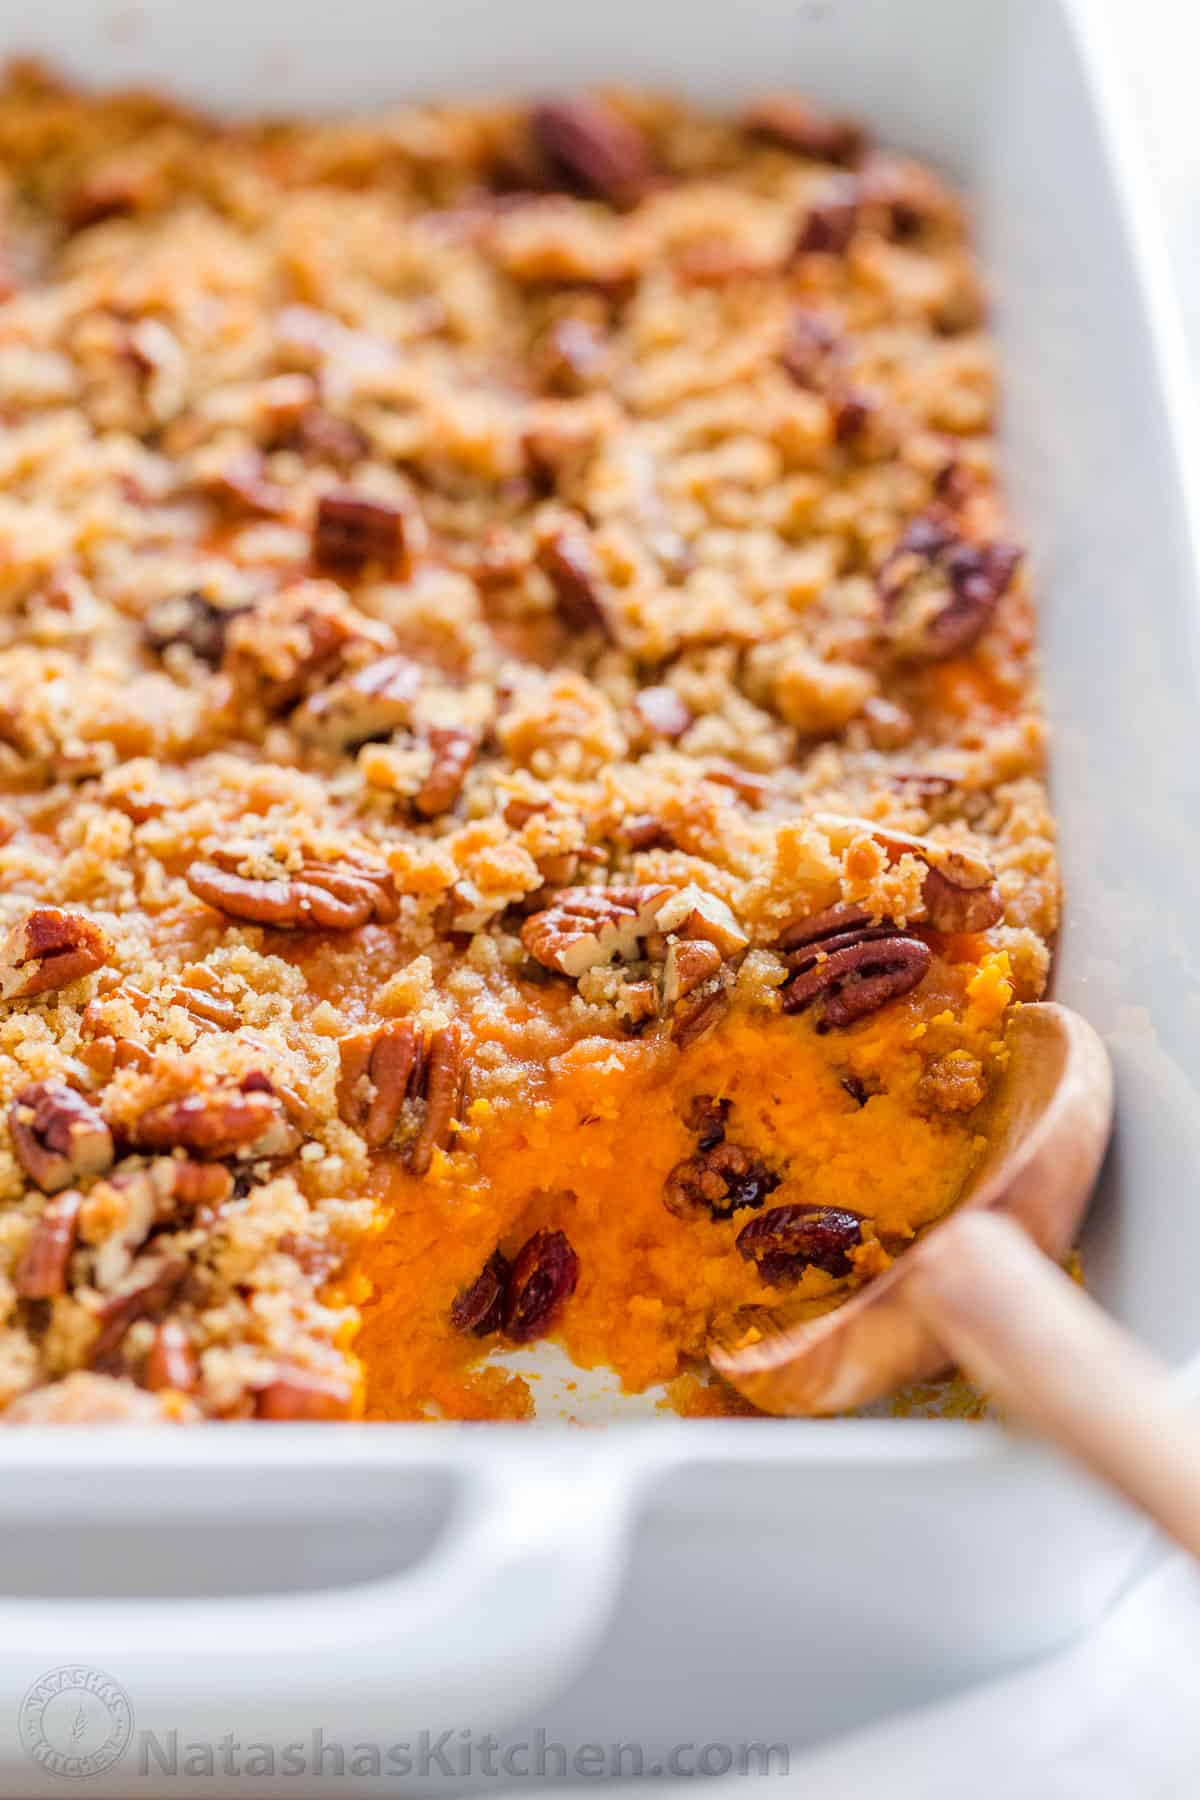 Sweet Potato Casserole Recipe Natashaskitchen Com